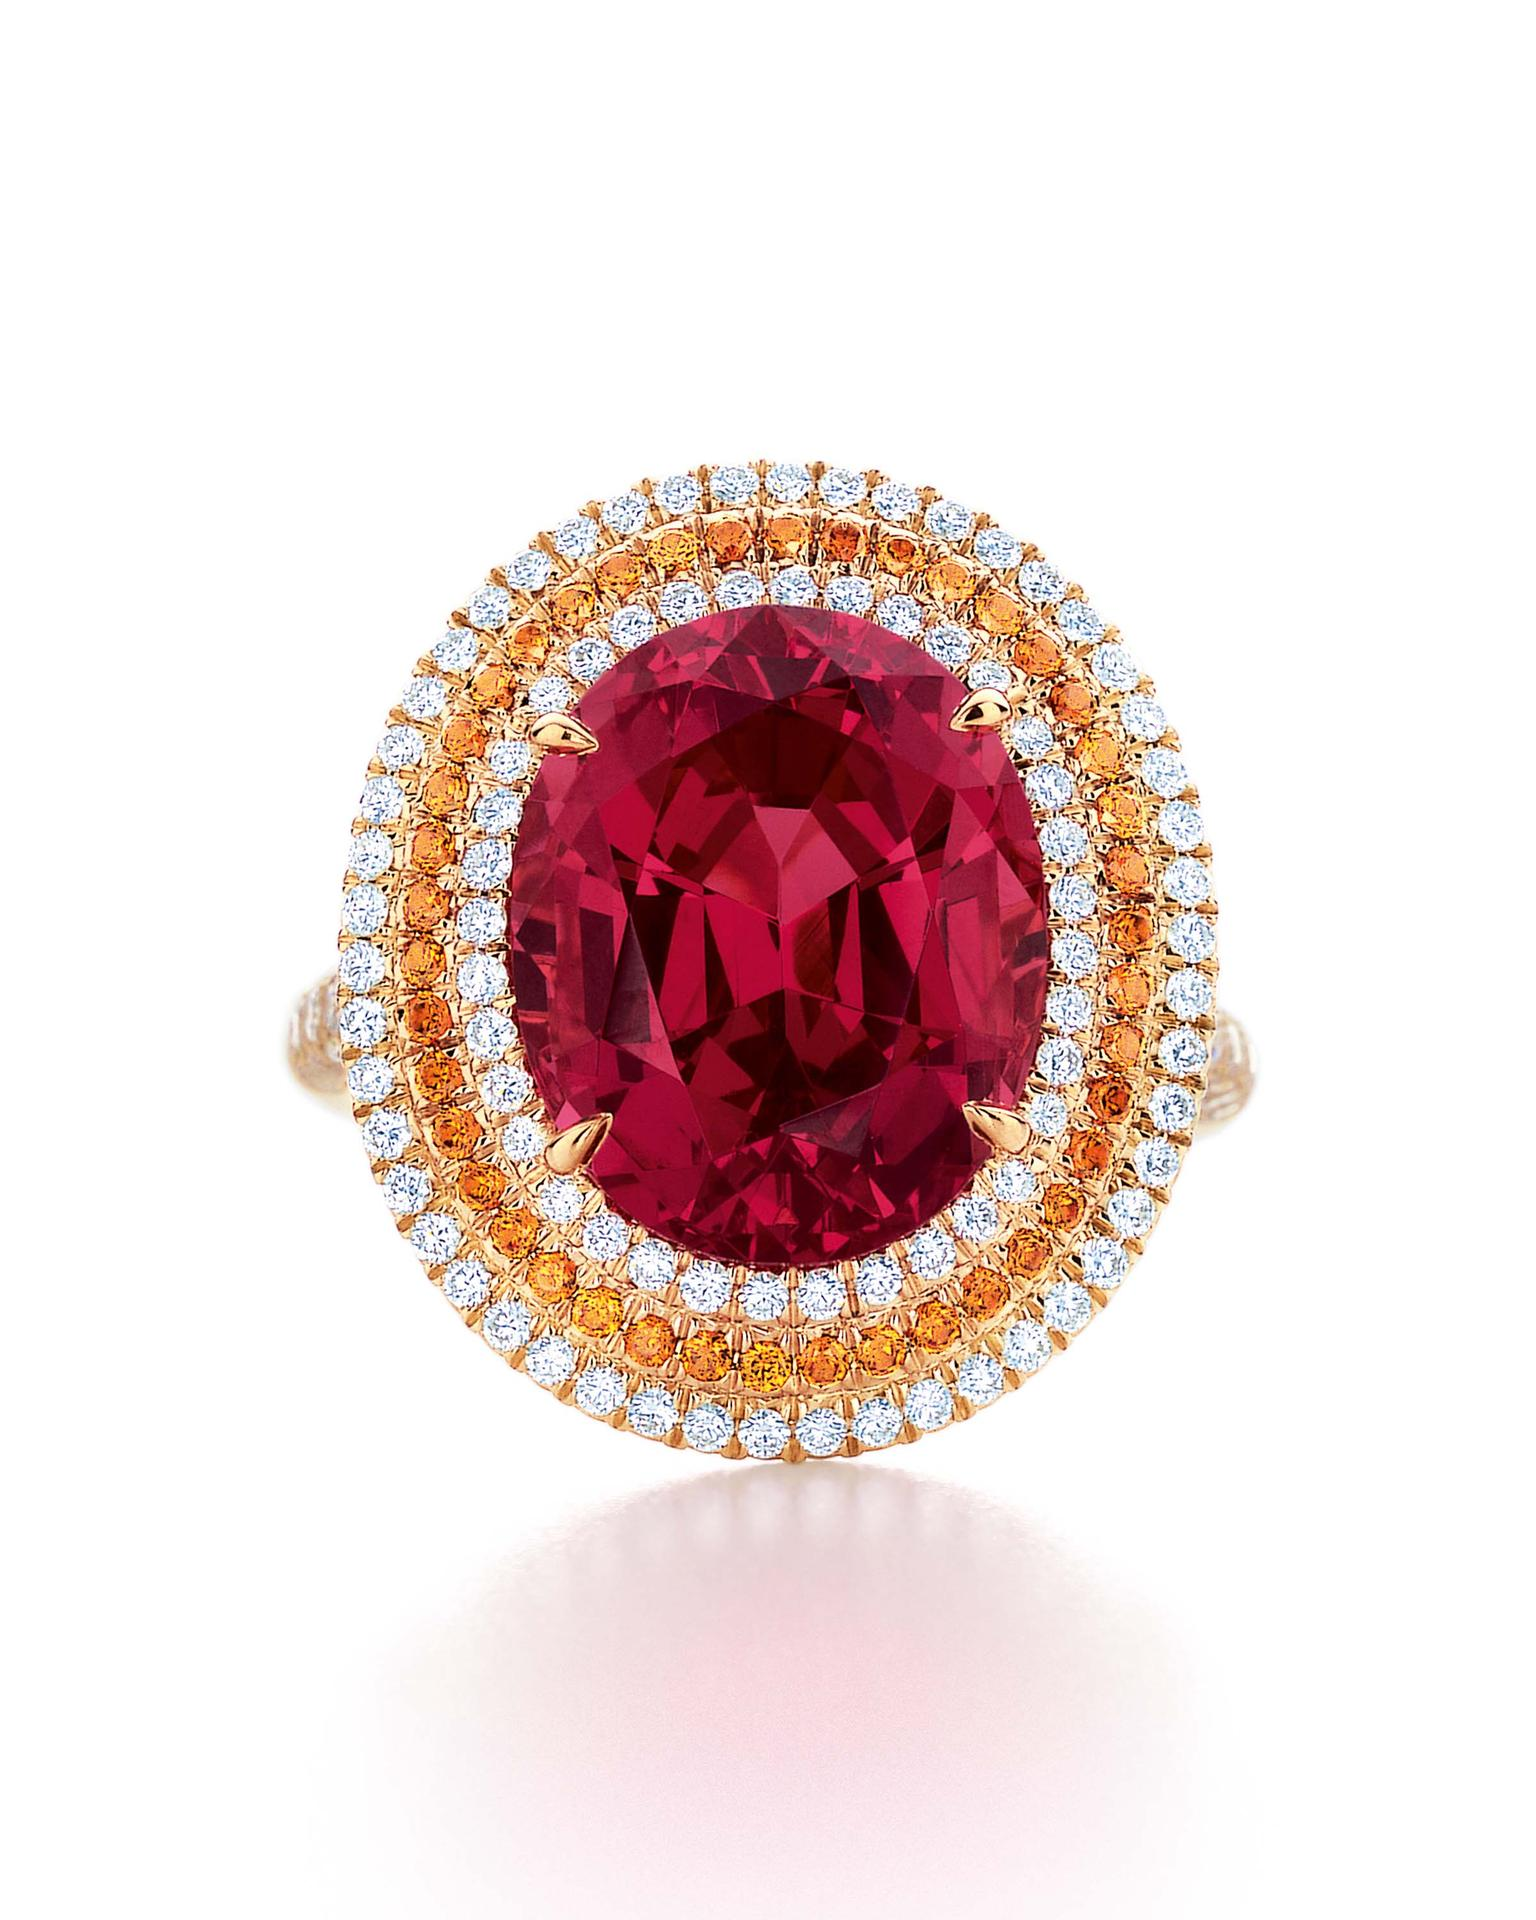 Tiffany & Co. Blue Book Collection red spinel ring with spessartite garnets and white diamonds set in yellow gold